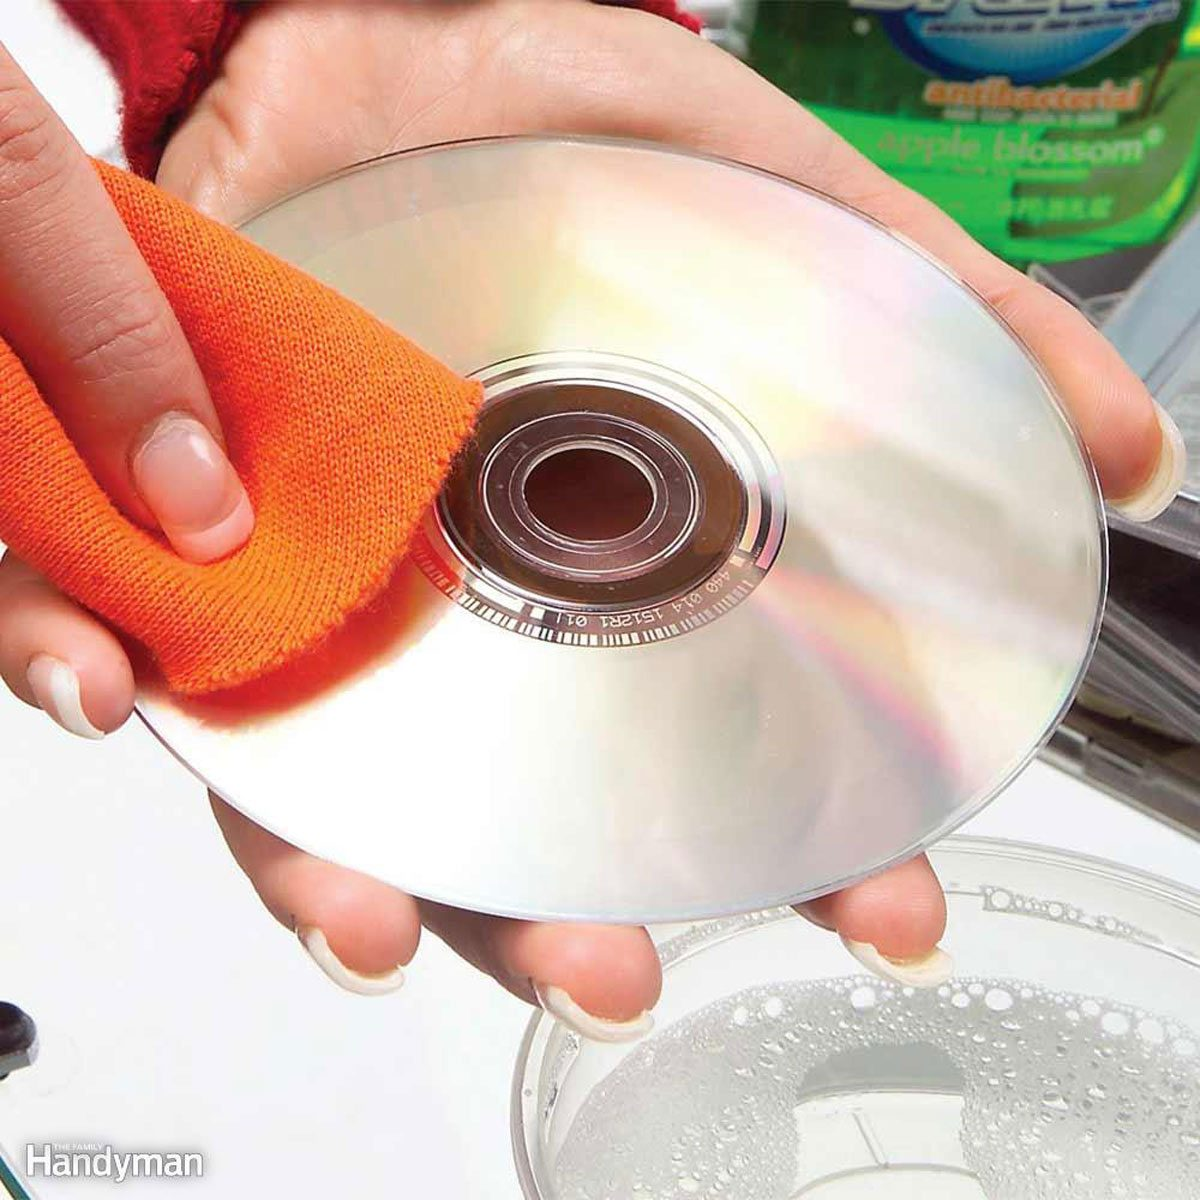 A Quick Cleaning Cures Skipping Discs